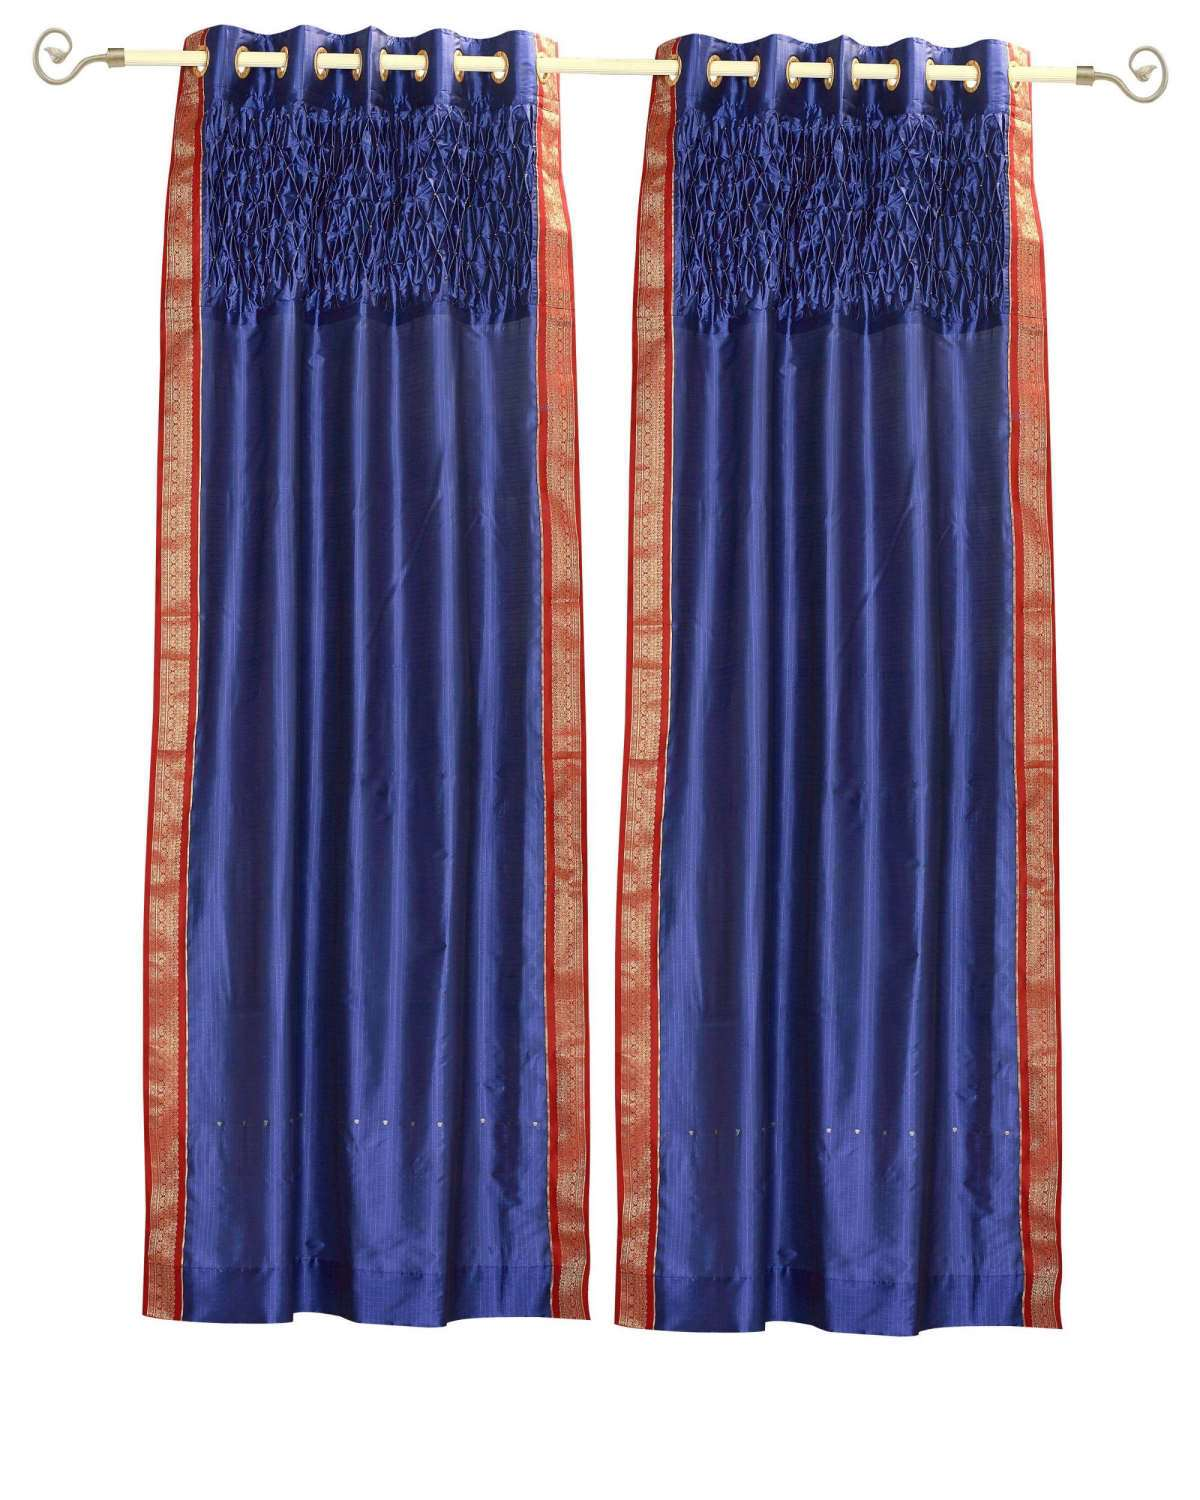 Lined-Blue Grommet Top Sheer Sari Curtain Panel with beaded hand design-43Wx84L-Piece